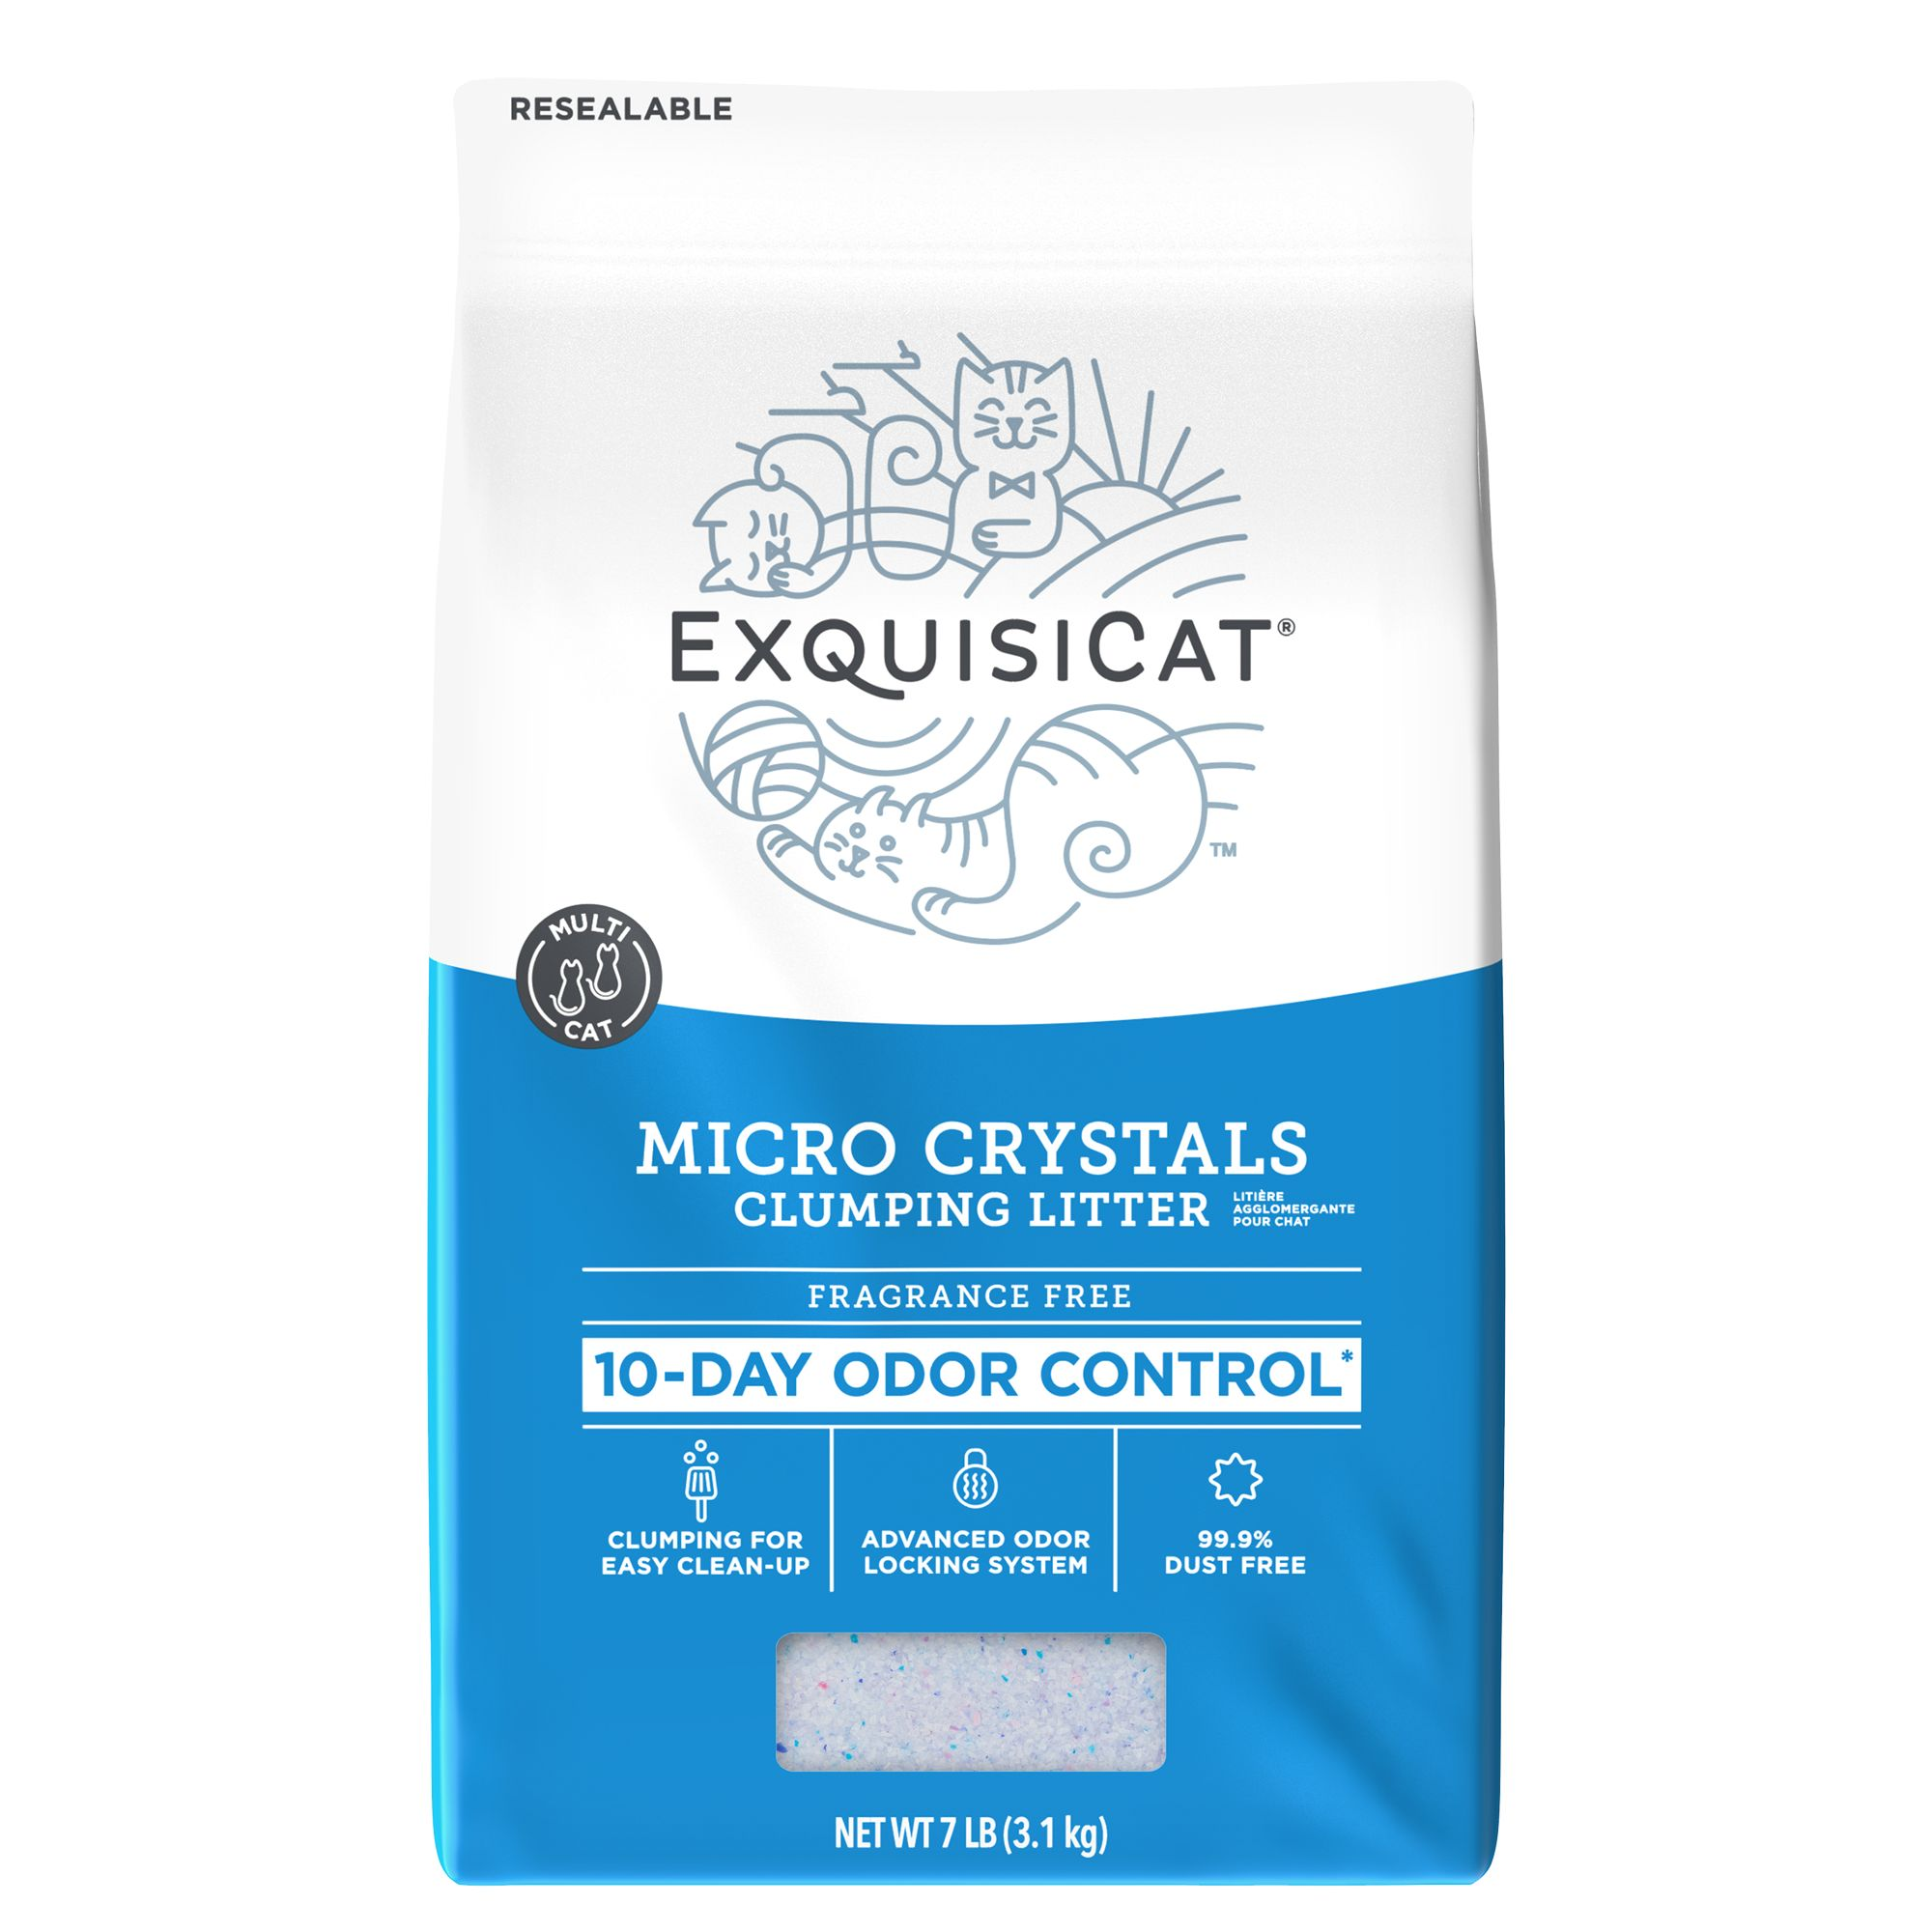 Exquisicat Fragrance Free Clumping Micro Crystals Cat Litter Size 7 Lb